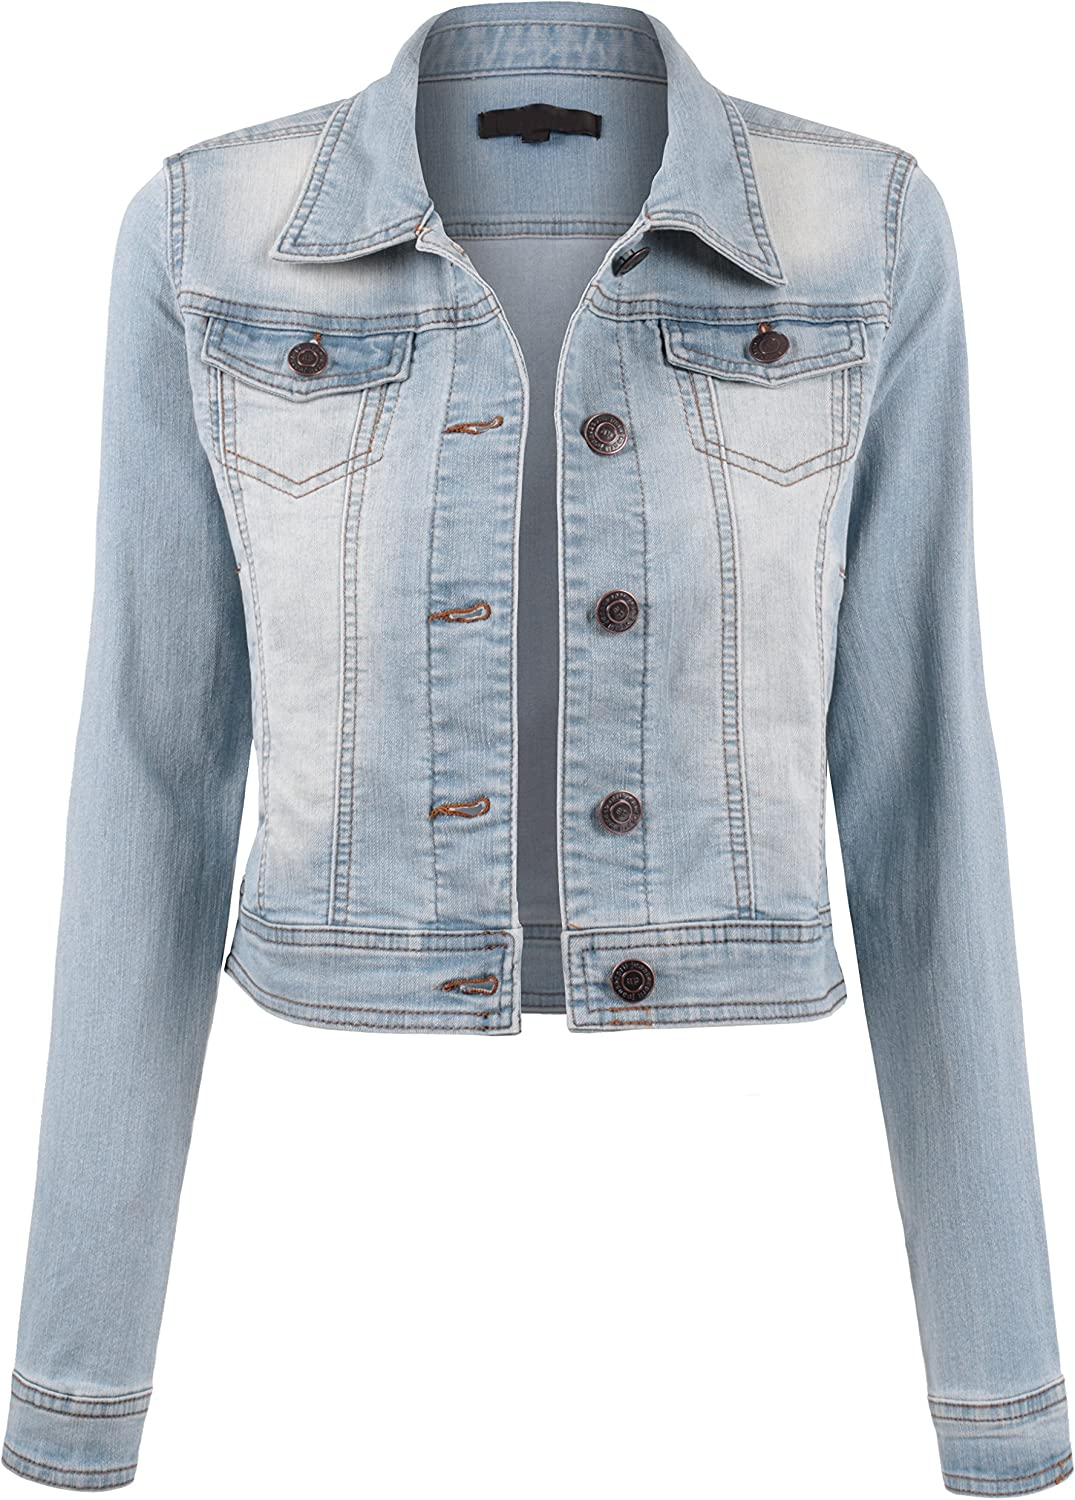 BEKDO Womens Classic Long Sleeve Button Cheap Max 76% OFF super special price Up Jacket Slim Fit Denim